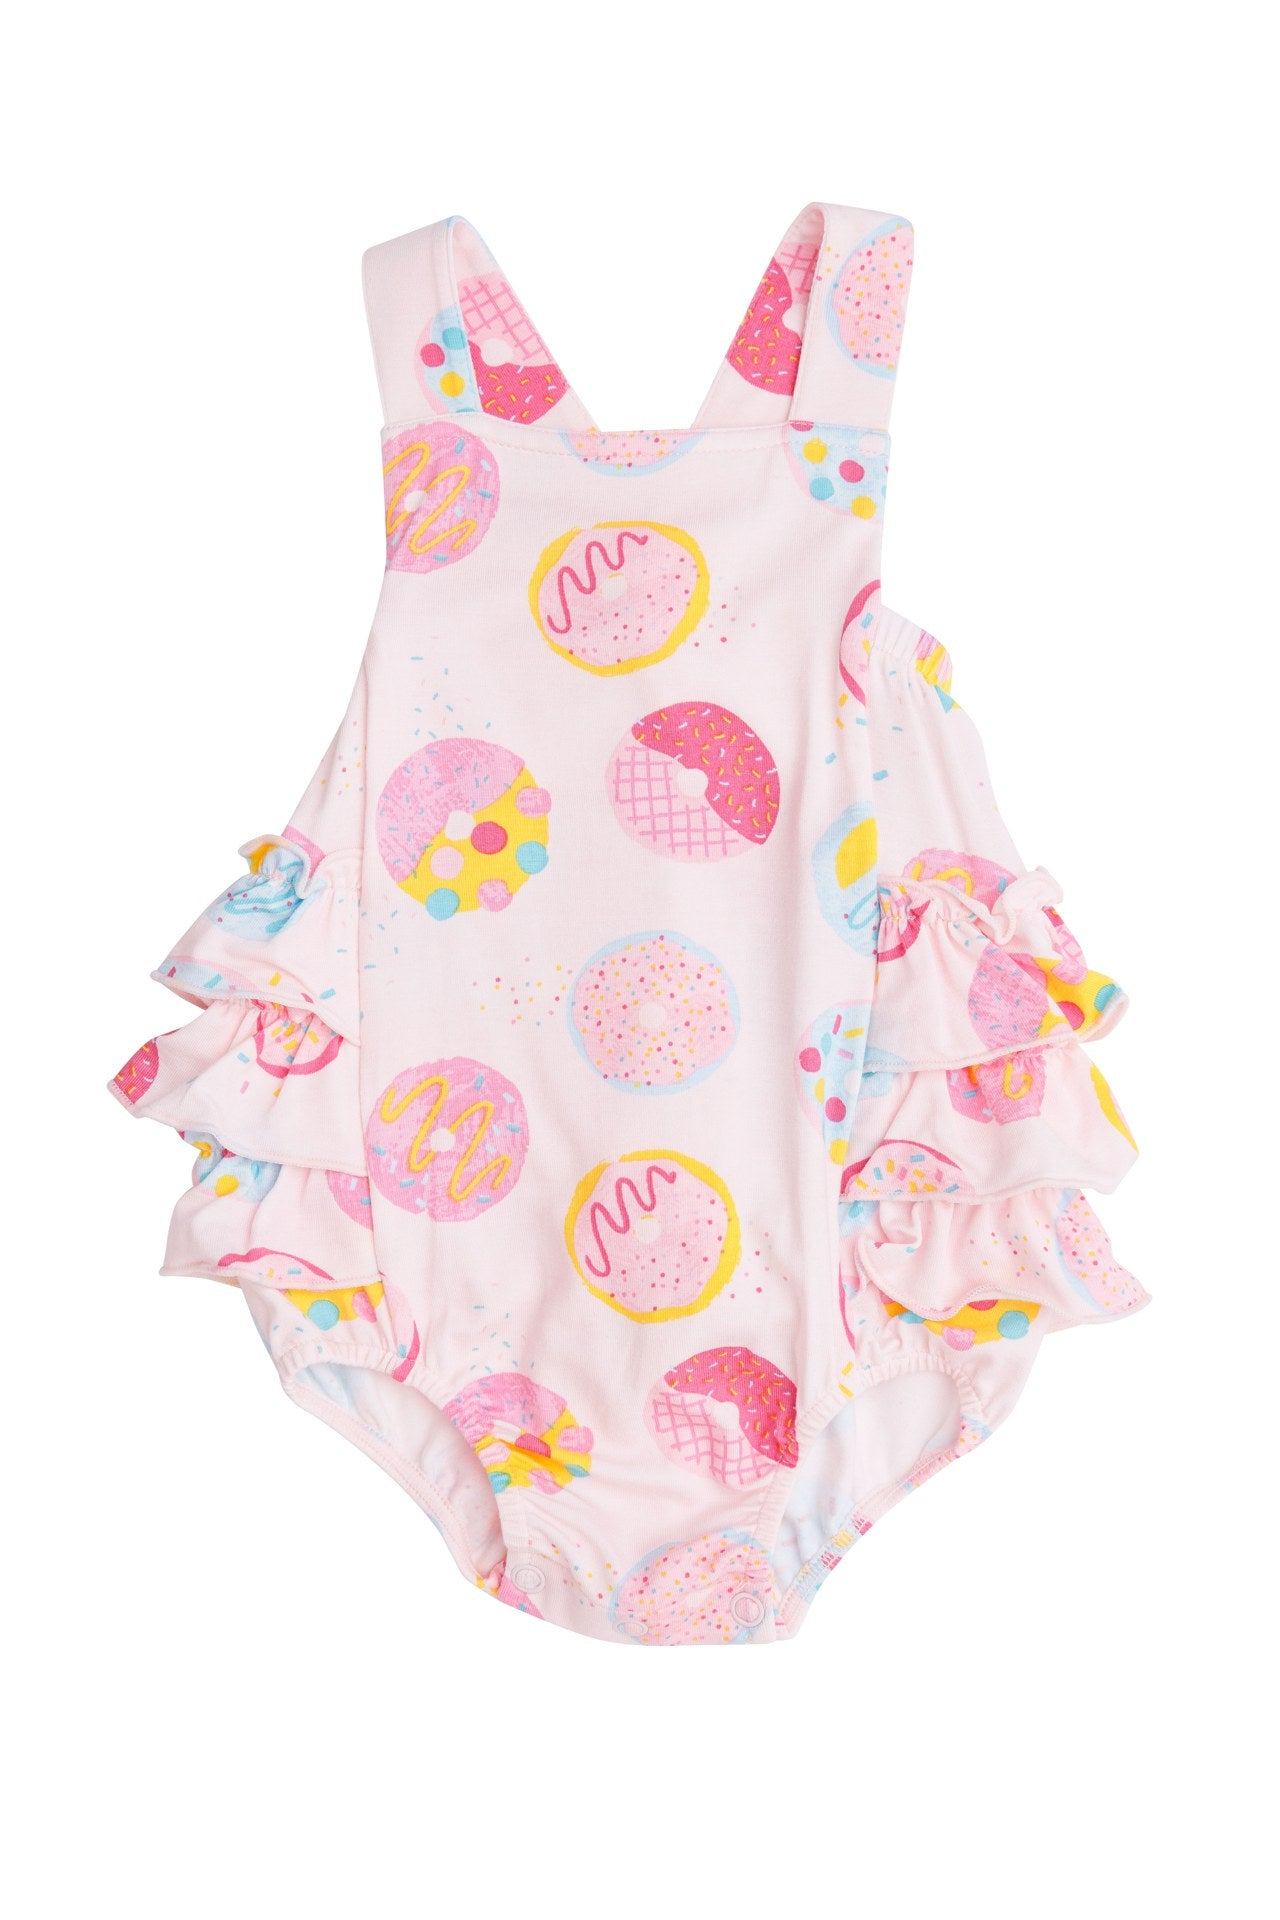 Donuts Ruffle Sunsuit Pink